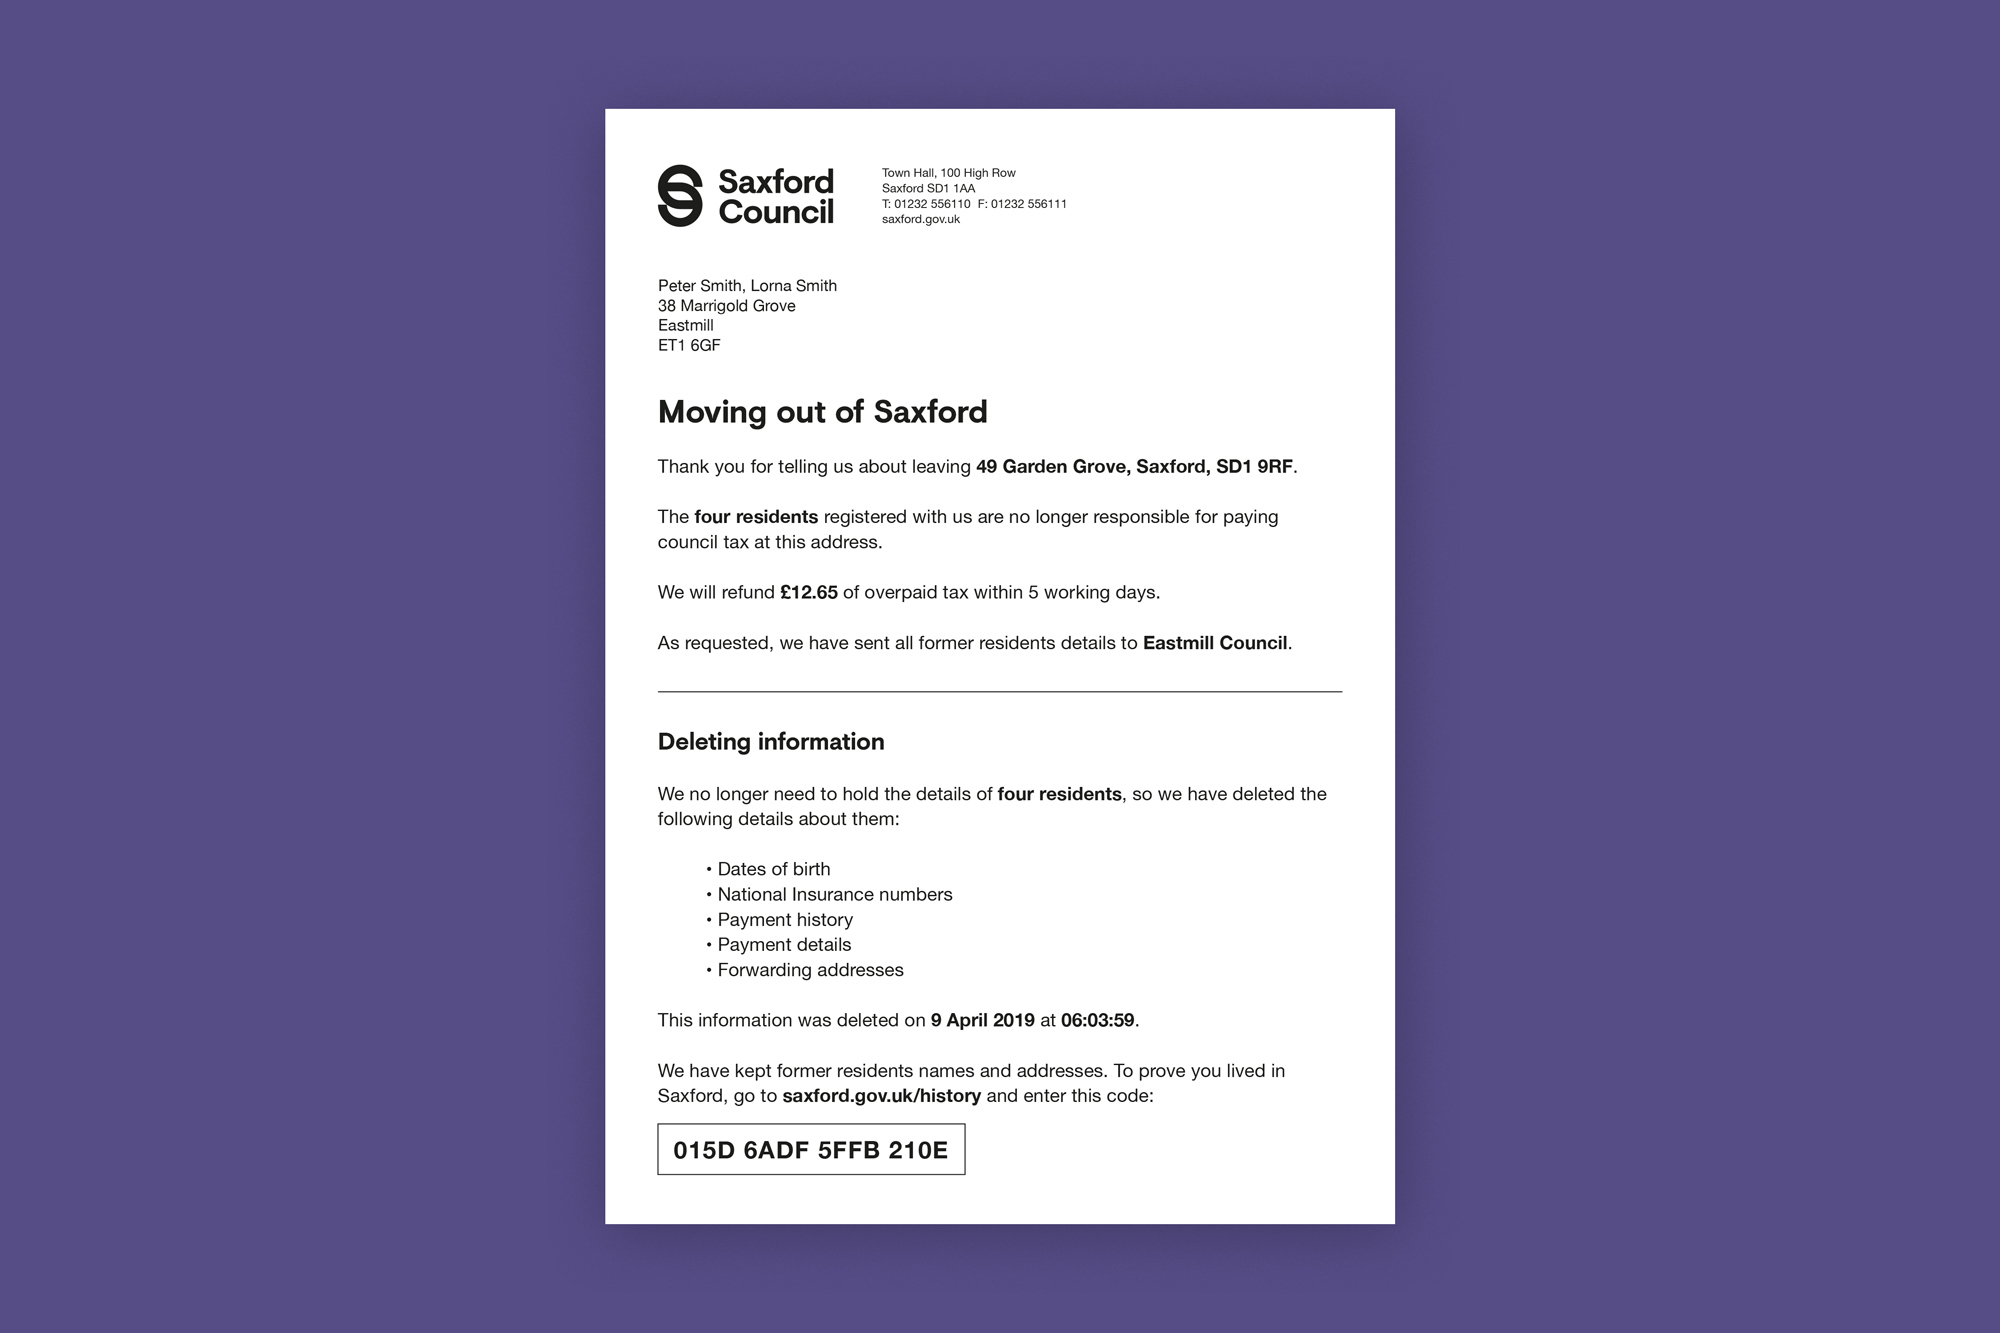 Coundcil tax letter confirming house move and deleting council tax information for previous property